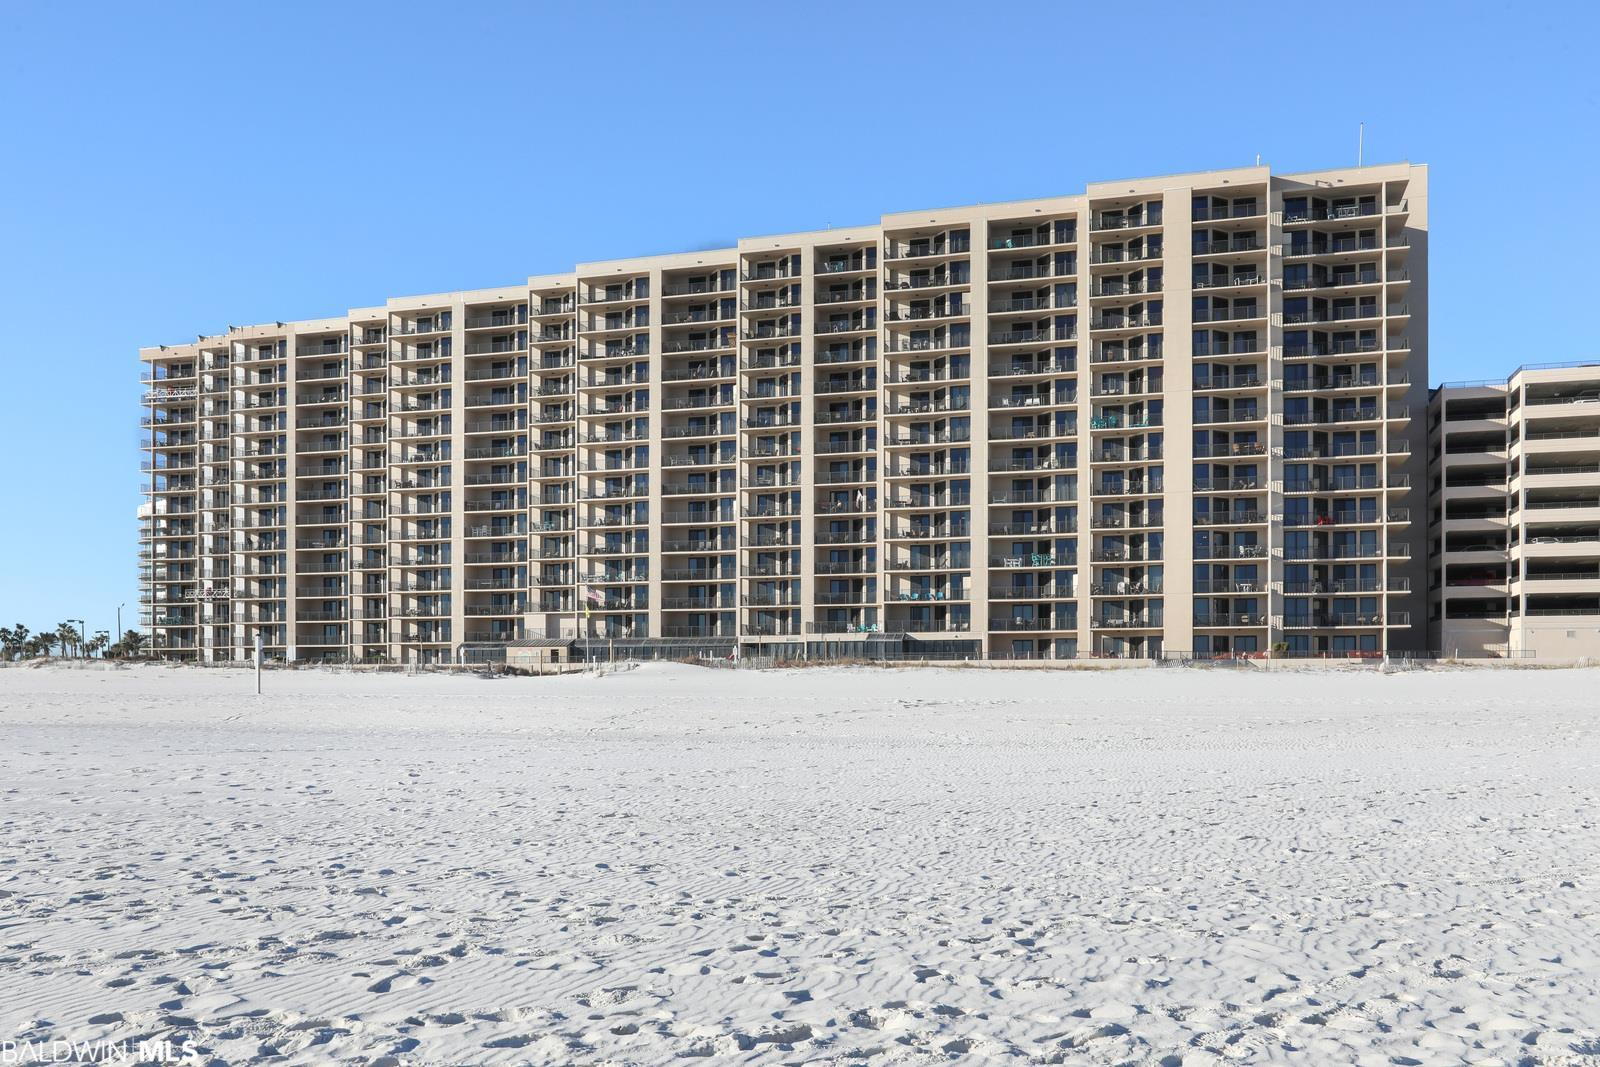 Phoenix X is situated directly on the white sandy beaches of Orange Beach, AL adjacent to the world famous Flora-Bama lounge! This complex also has some great amenities - indoor and outdoor pools, double hot tubs, exercise facility, lighted tennis court, shuffleboard, saunas, and grilling area. Note: Amenities are being rebuilt after Hurricane Sally with expected completion time to be end of Spring 2021 or sooner. These new amenities should be great for future rentals! The views from this CORNER UNIT are breathtaking! 2 balconies to enjoy the water views and amazing sunsets! One wrap around balcony overlooking the Gulf of Mexico and the other overlooking Ole River. You can also take in the views from the living area or master bedroom. The kitchen is upgraded with granite countertops and stainless appliances, and there is a full sized washer/dryer in the unit. Unit is being sold fully furnished and is rent ready!